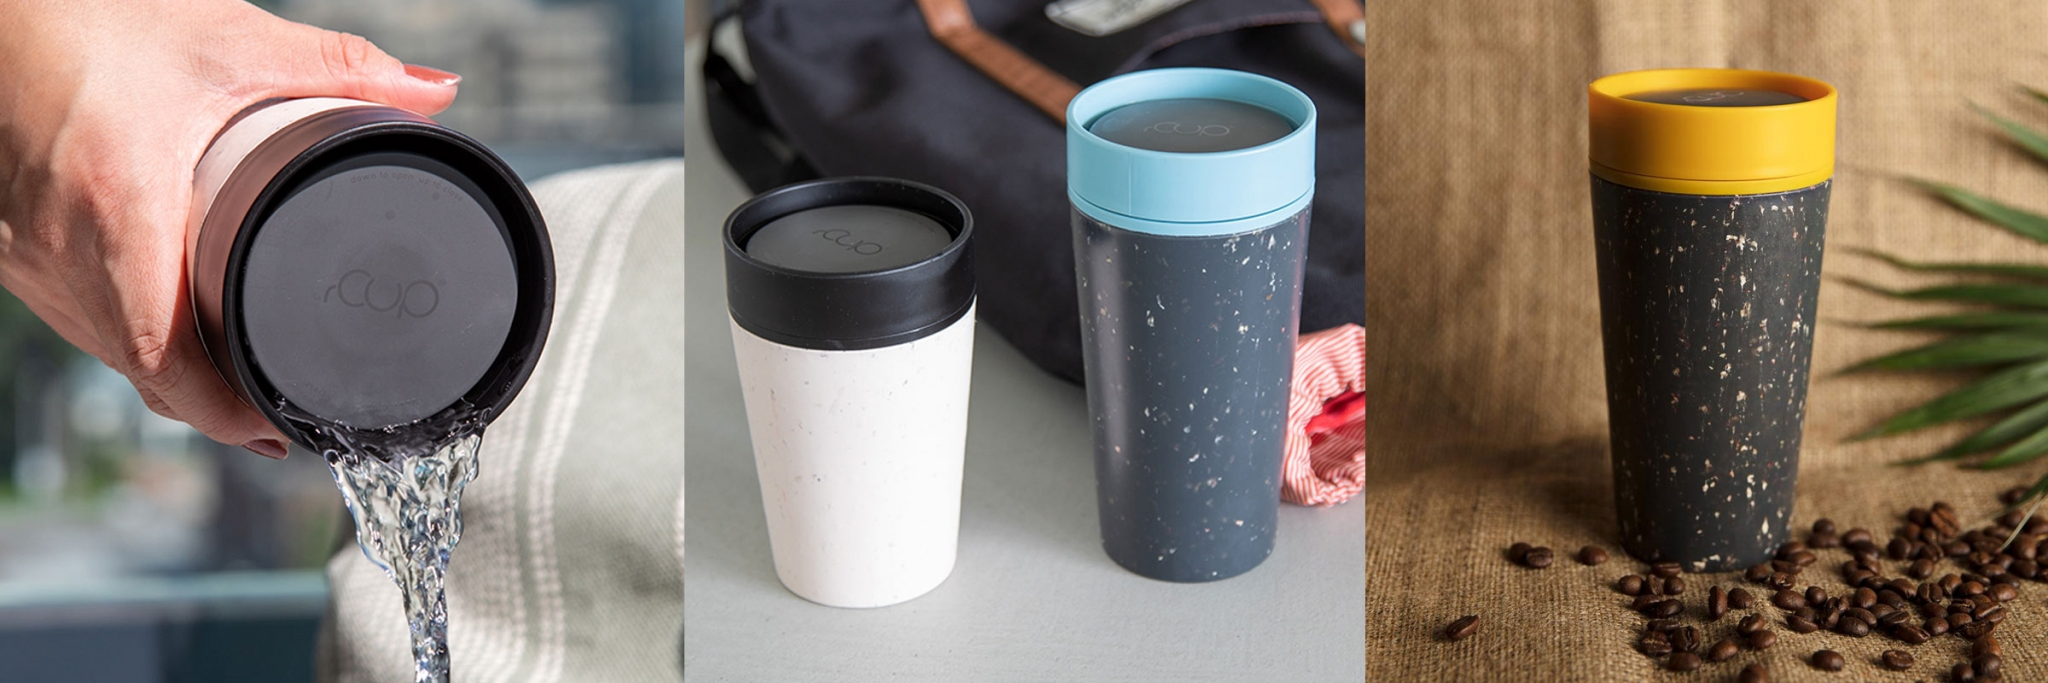 PROMOTIONAL BRANDED TRAVEL MUGS MADE FROM RECYCLED COFFEE CUPS